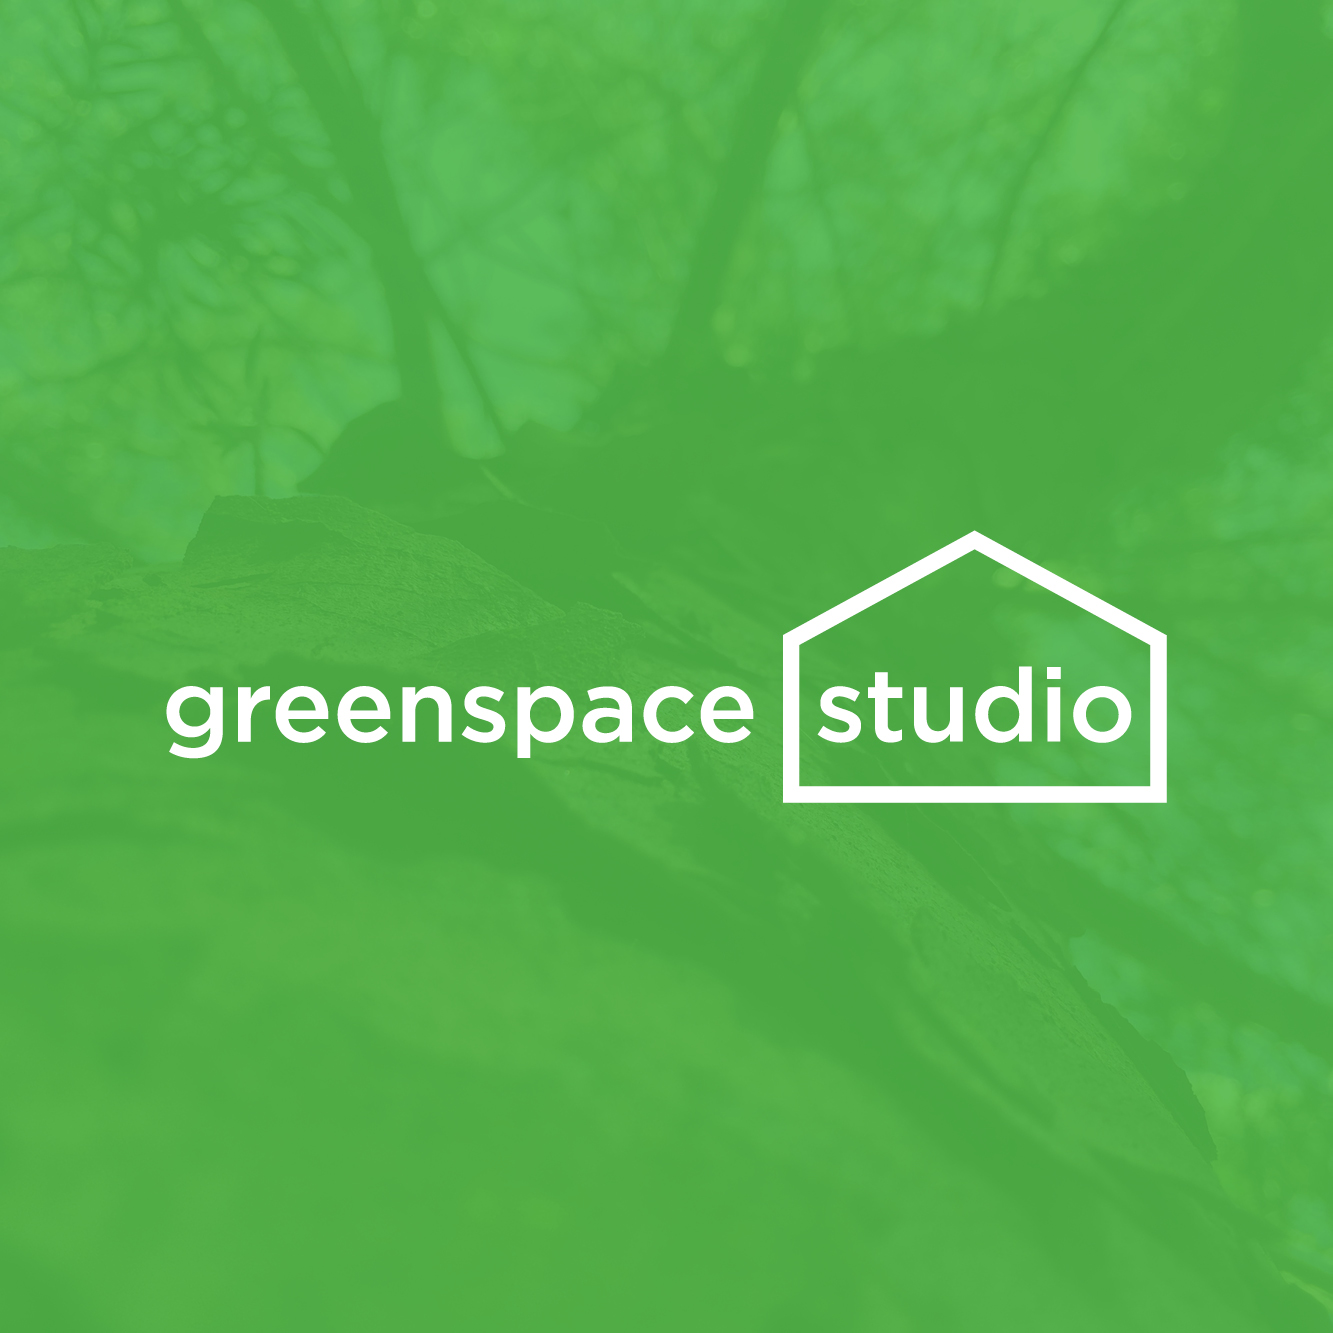 Greenspace Logo Design